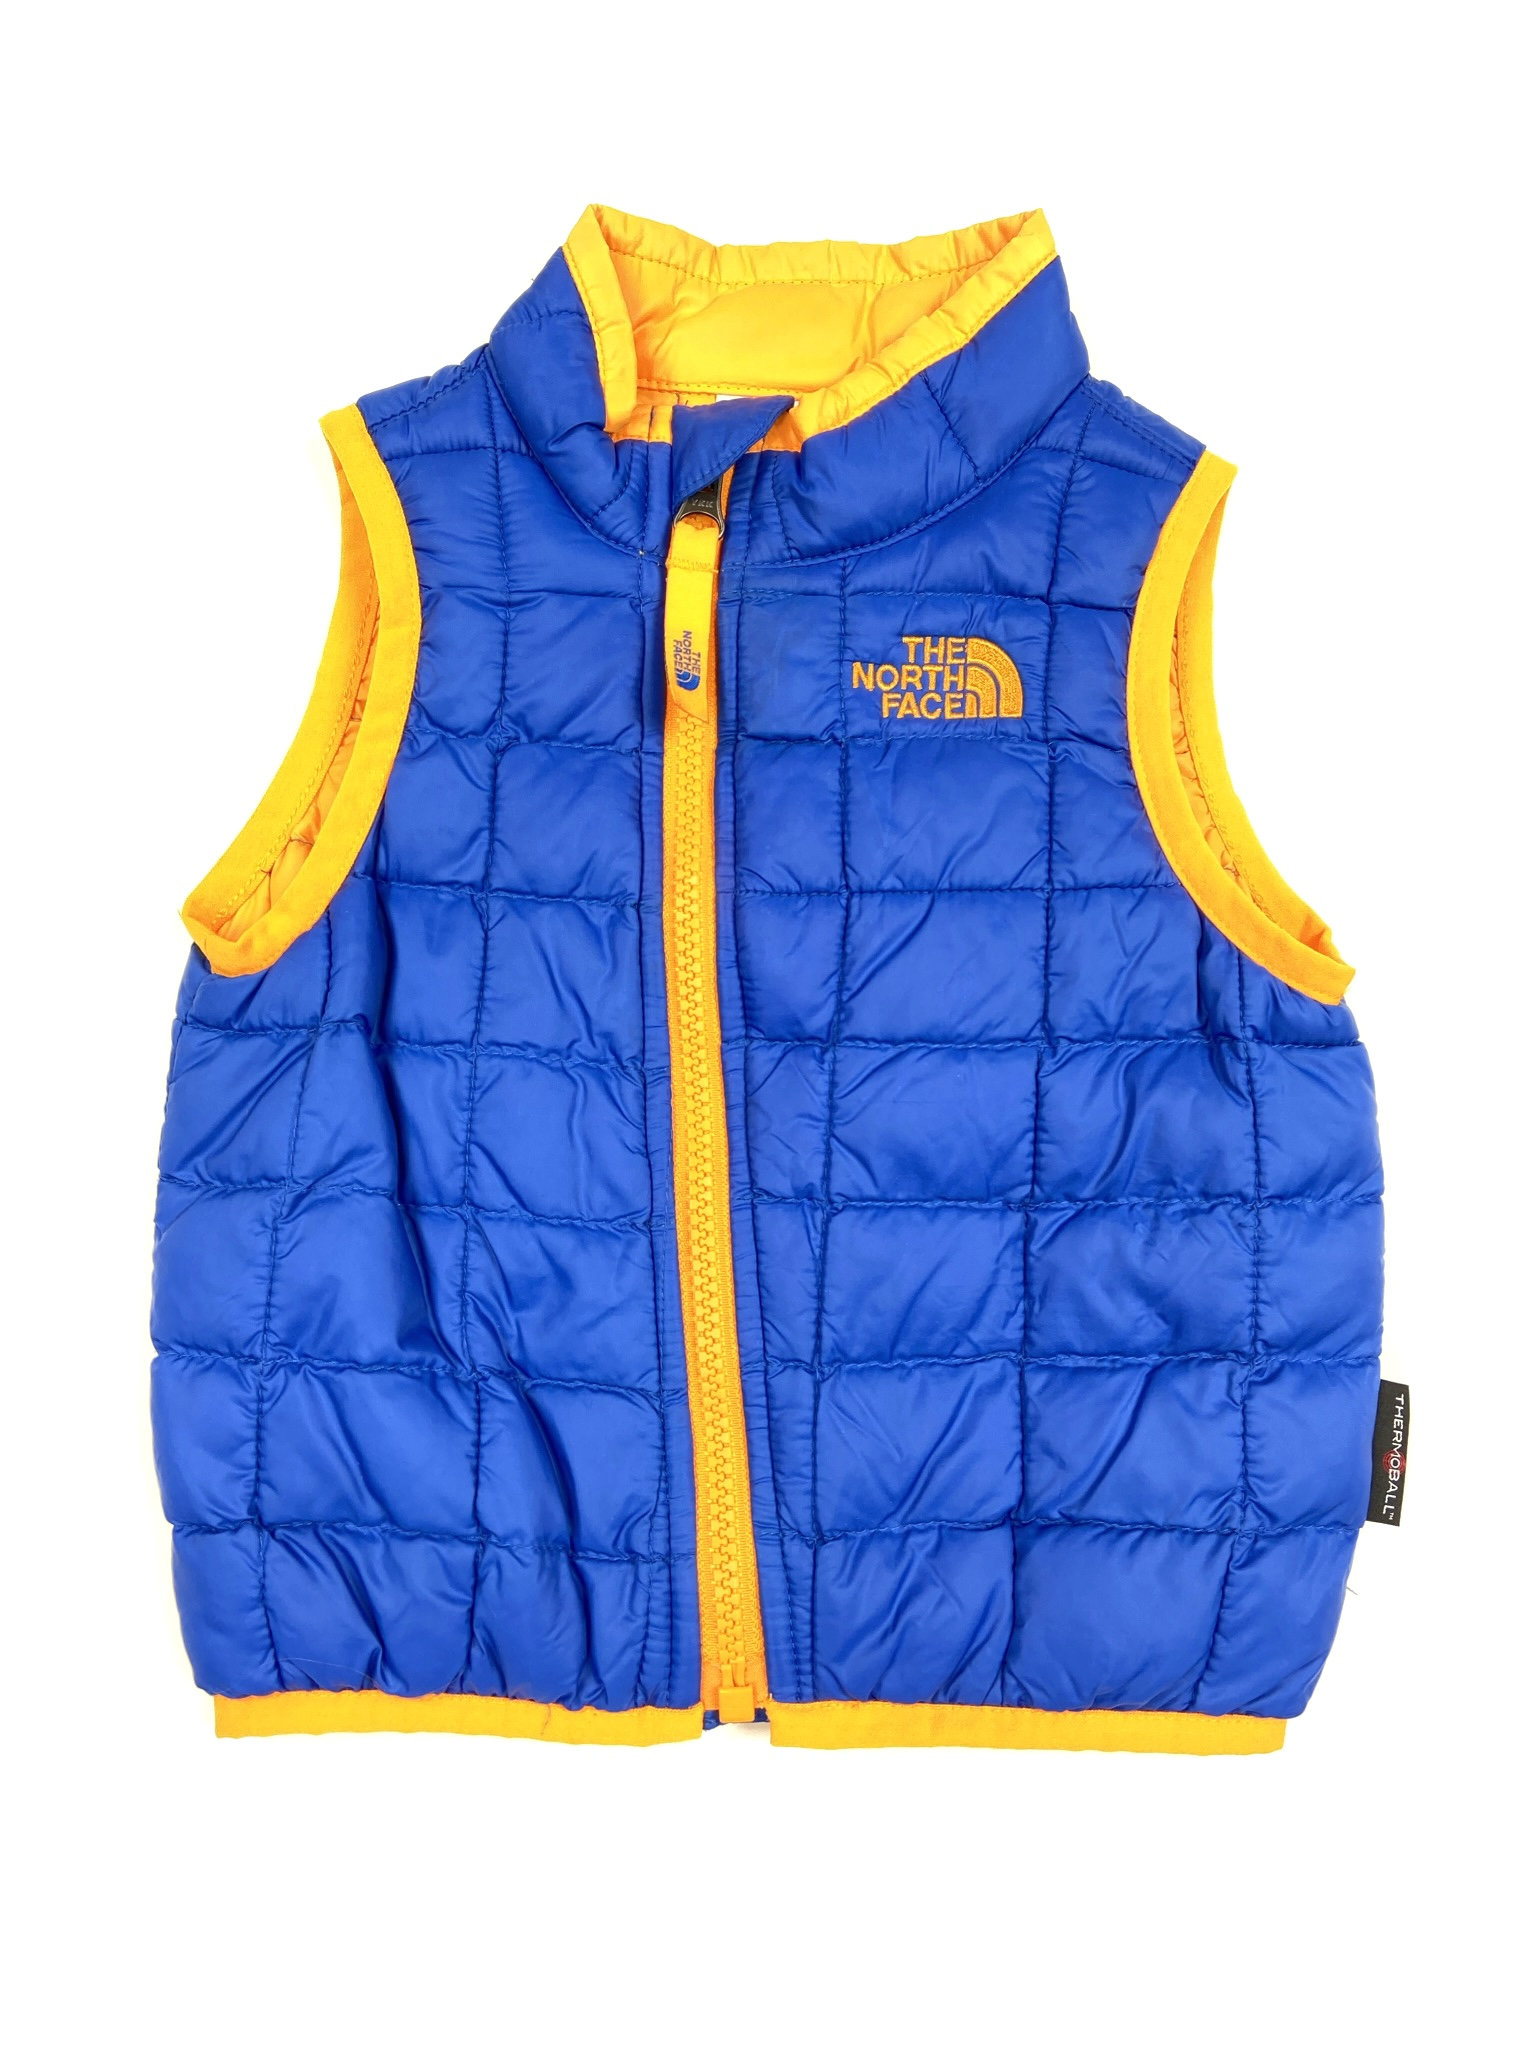 The North Face 6-12M Outerwear